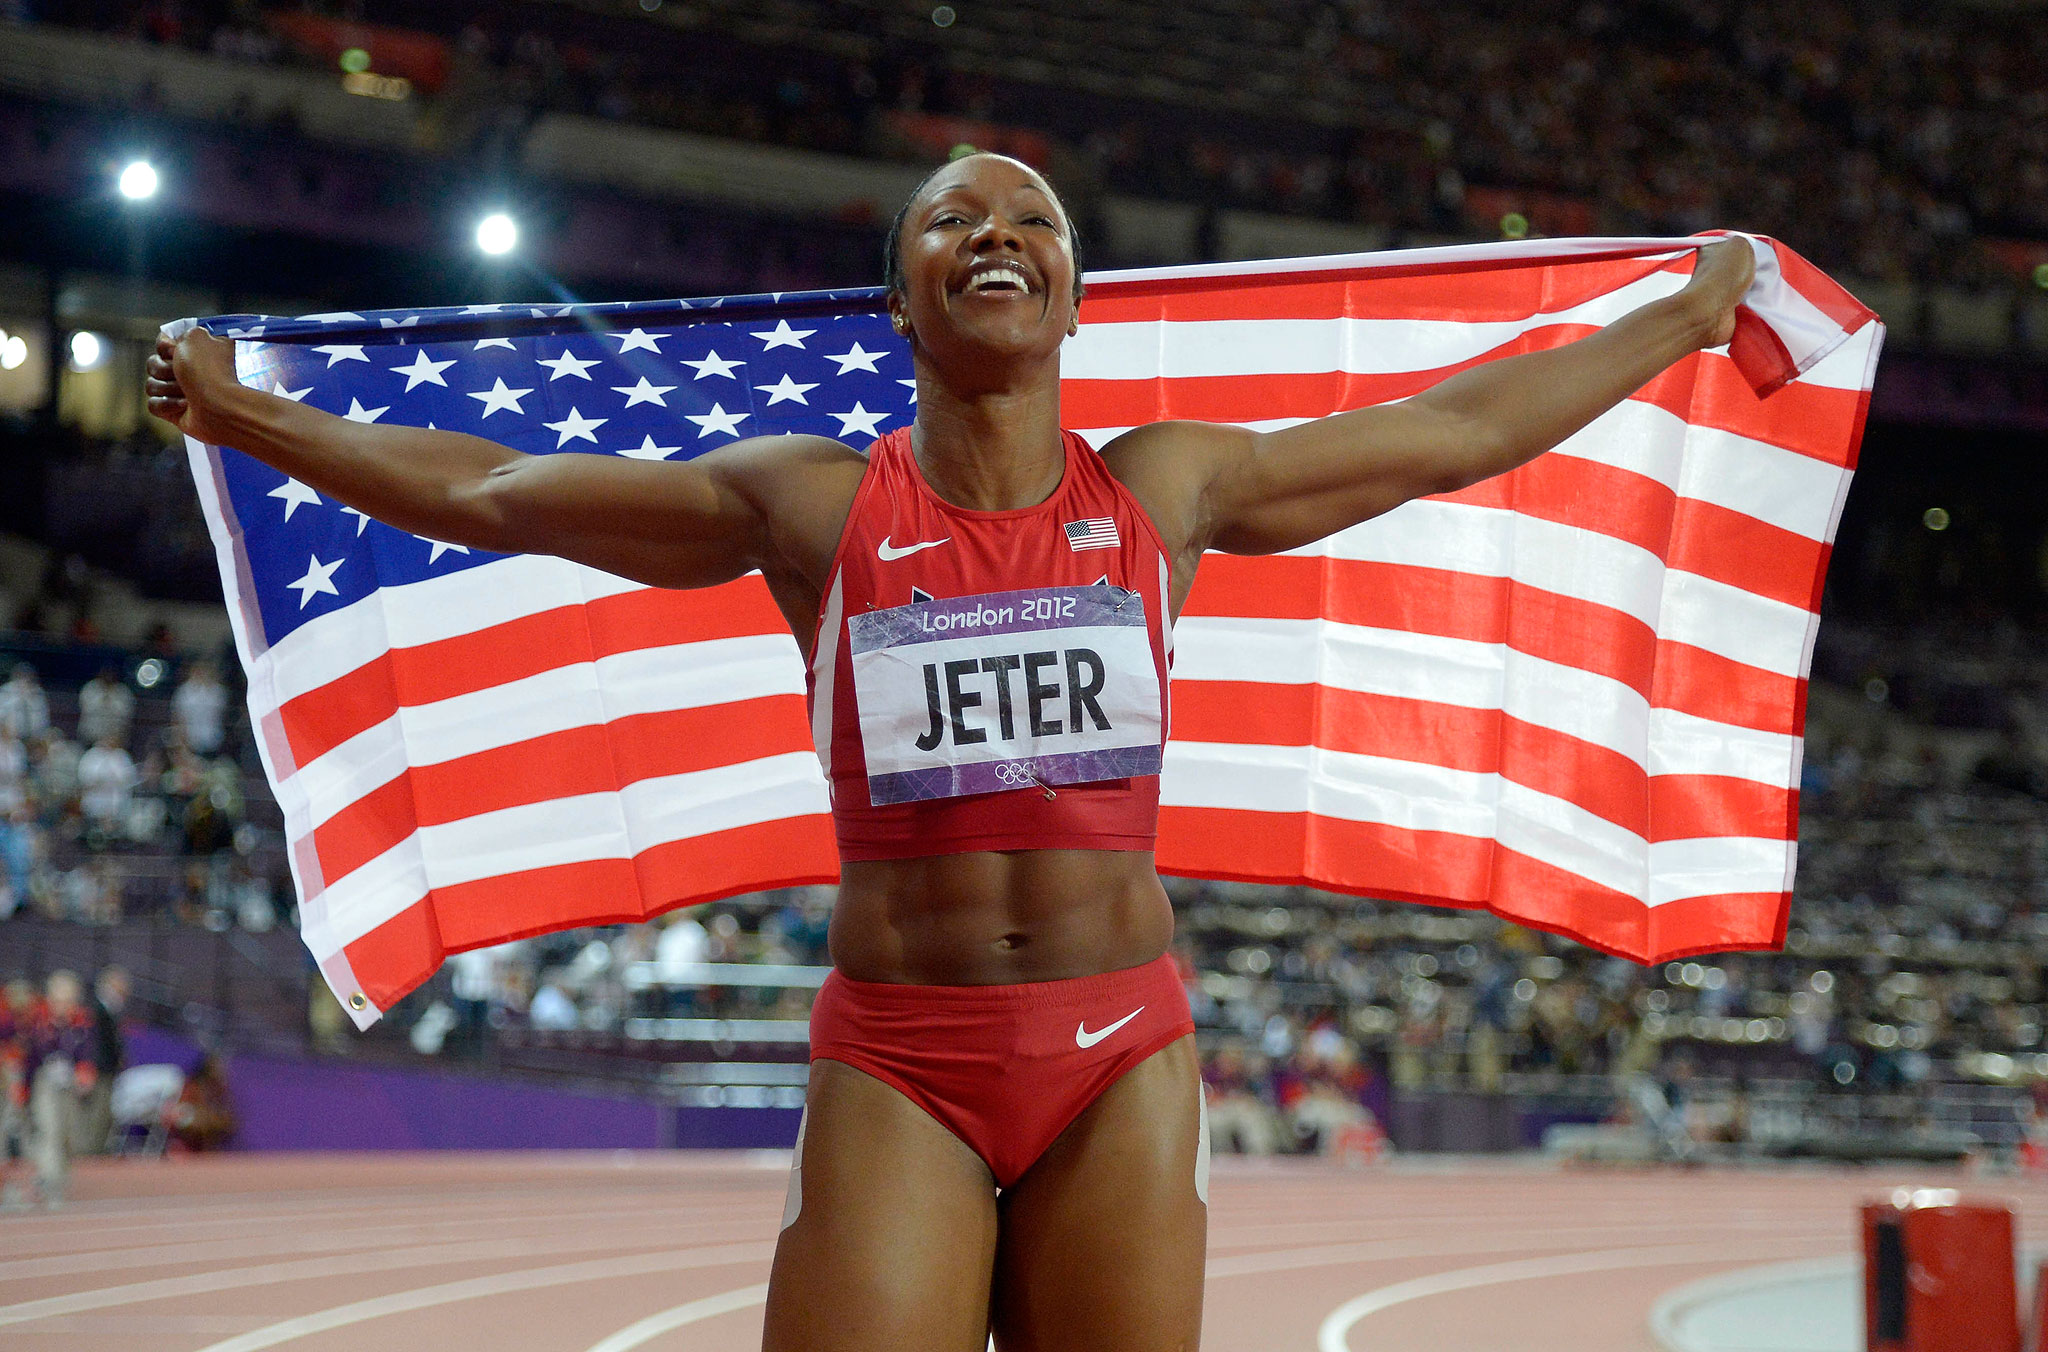 Carmelita Jeter celebrates after winning the bronze medal in the 200 meters at the London Olympics. At 32 years old, Jeter took home a gold, silver and bronze from the London Games.